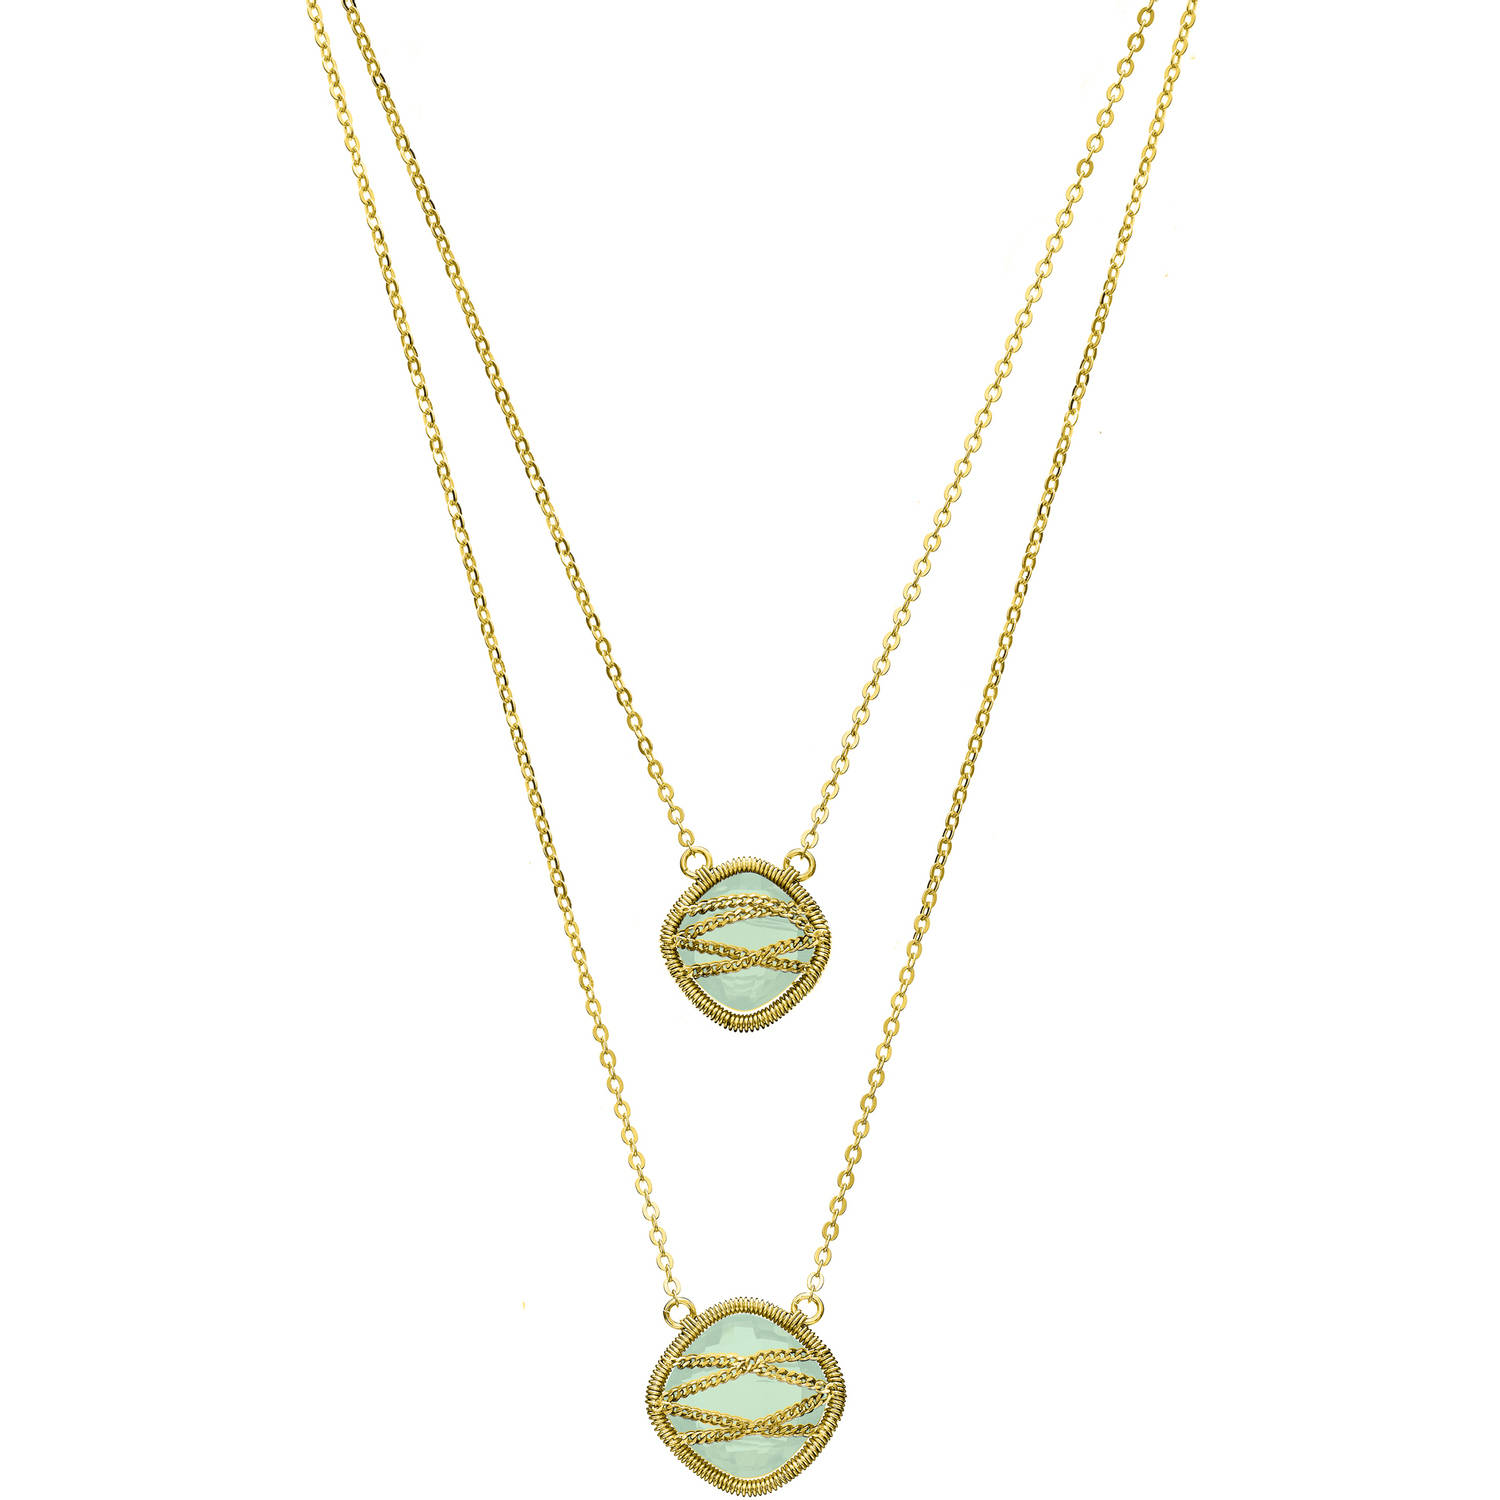 Image of 5th & Main 18kt Gold over Sterling Silver Hand-Wrapped Double-Drop Squared Chalcedony Stone Necklace